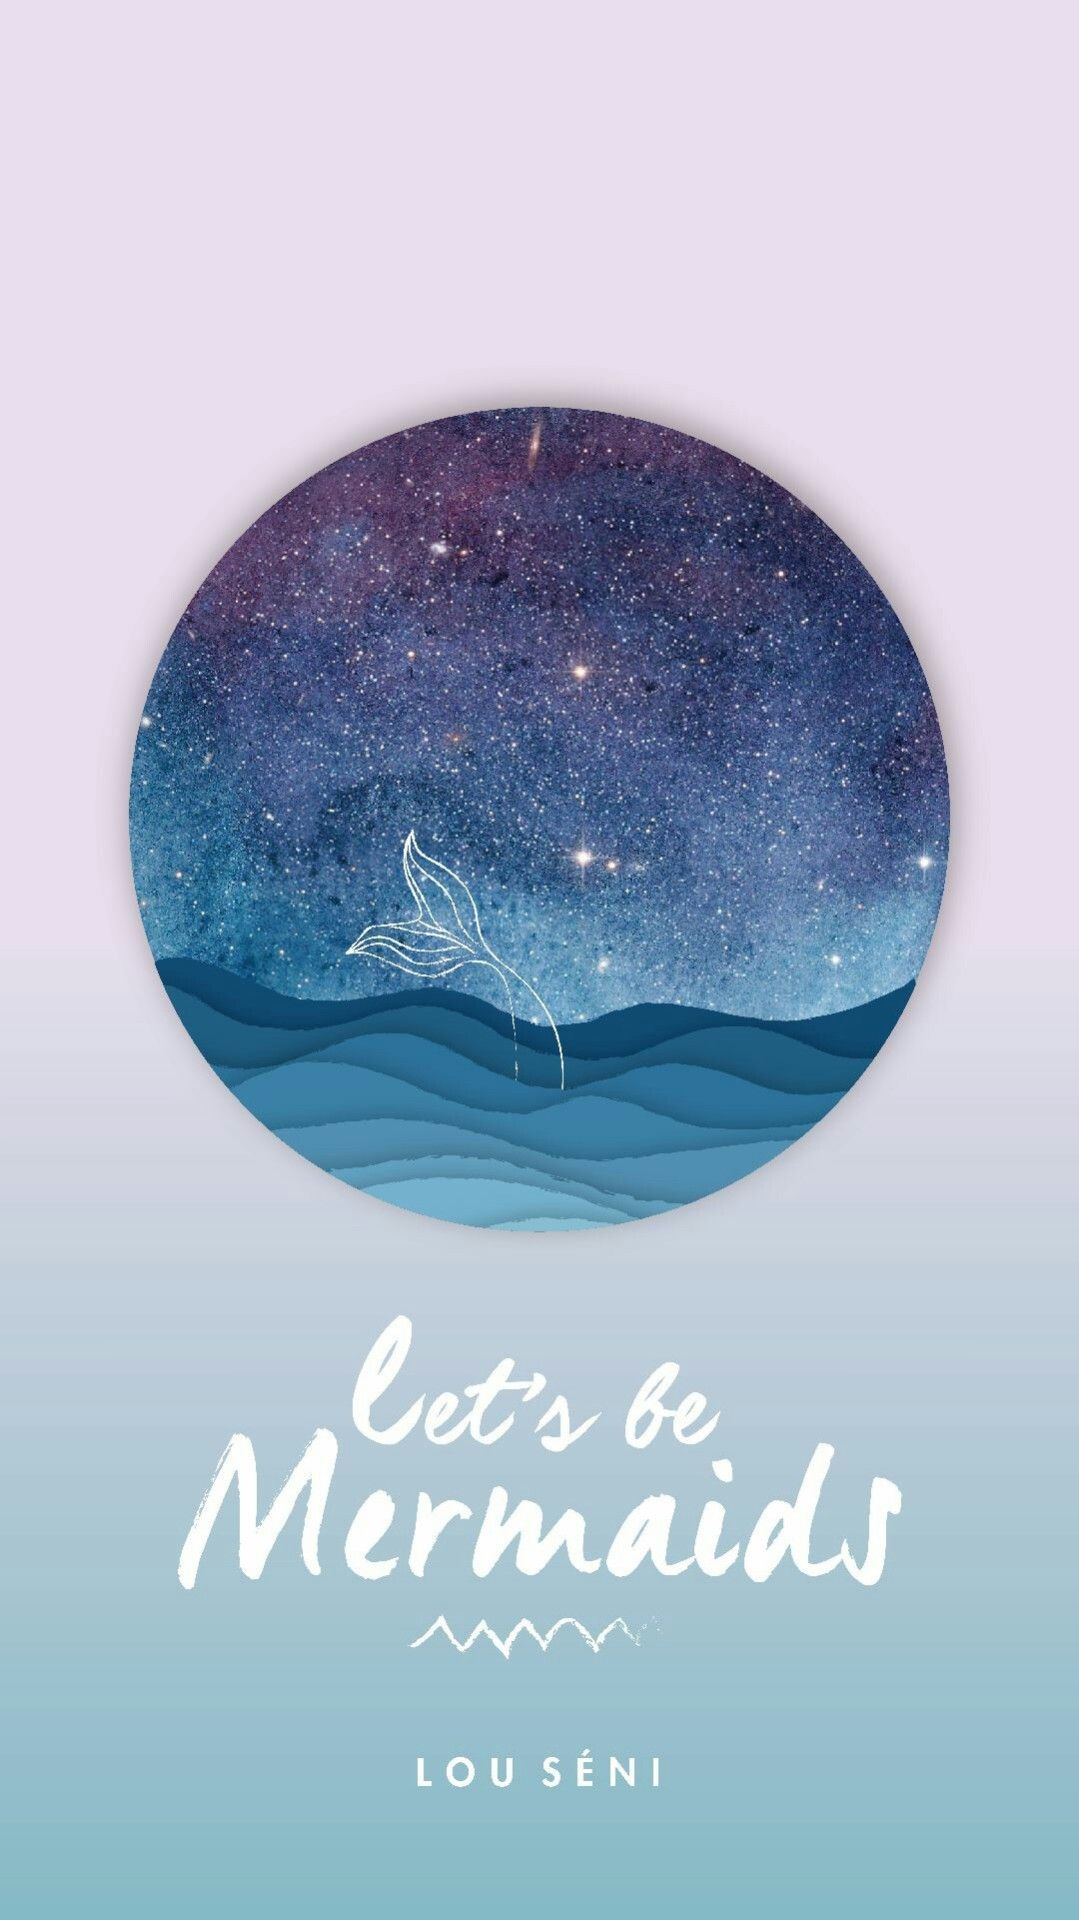 Mermaid Lockscreen If Youre Use Save Please Like Or Share Wallpaper Stiker Dinding Lux 5 23pr